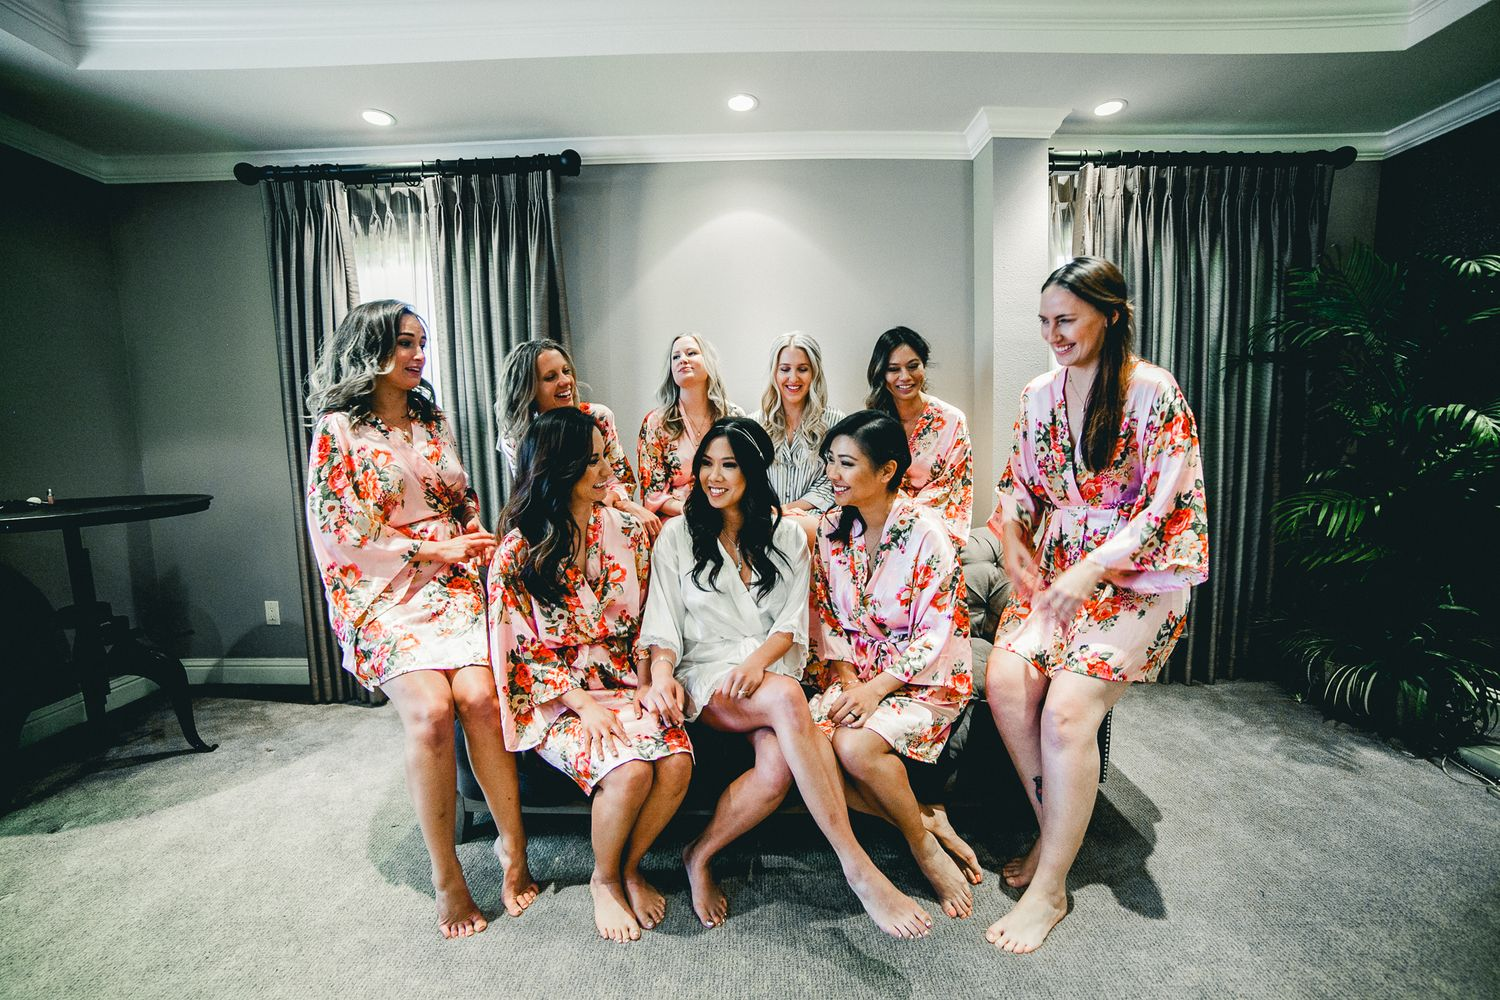 bridal party sitting on couch with bride in robes